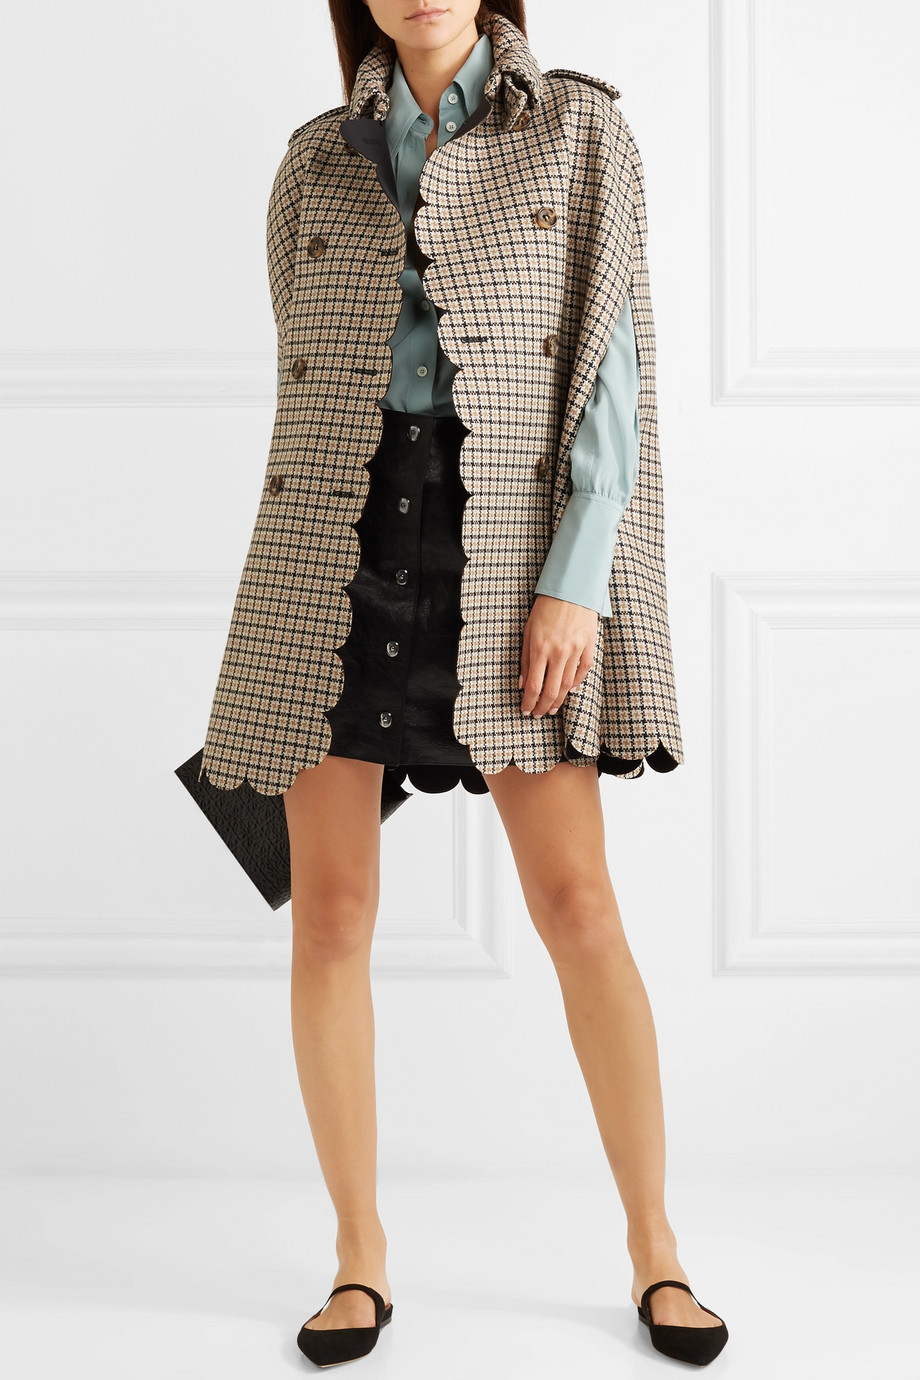 Red Valentino Scalloped checked wool-blend cape $1,195